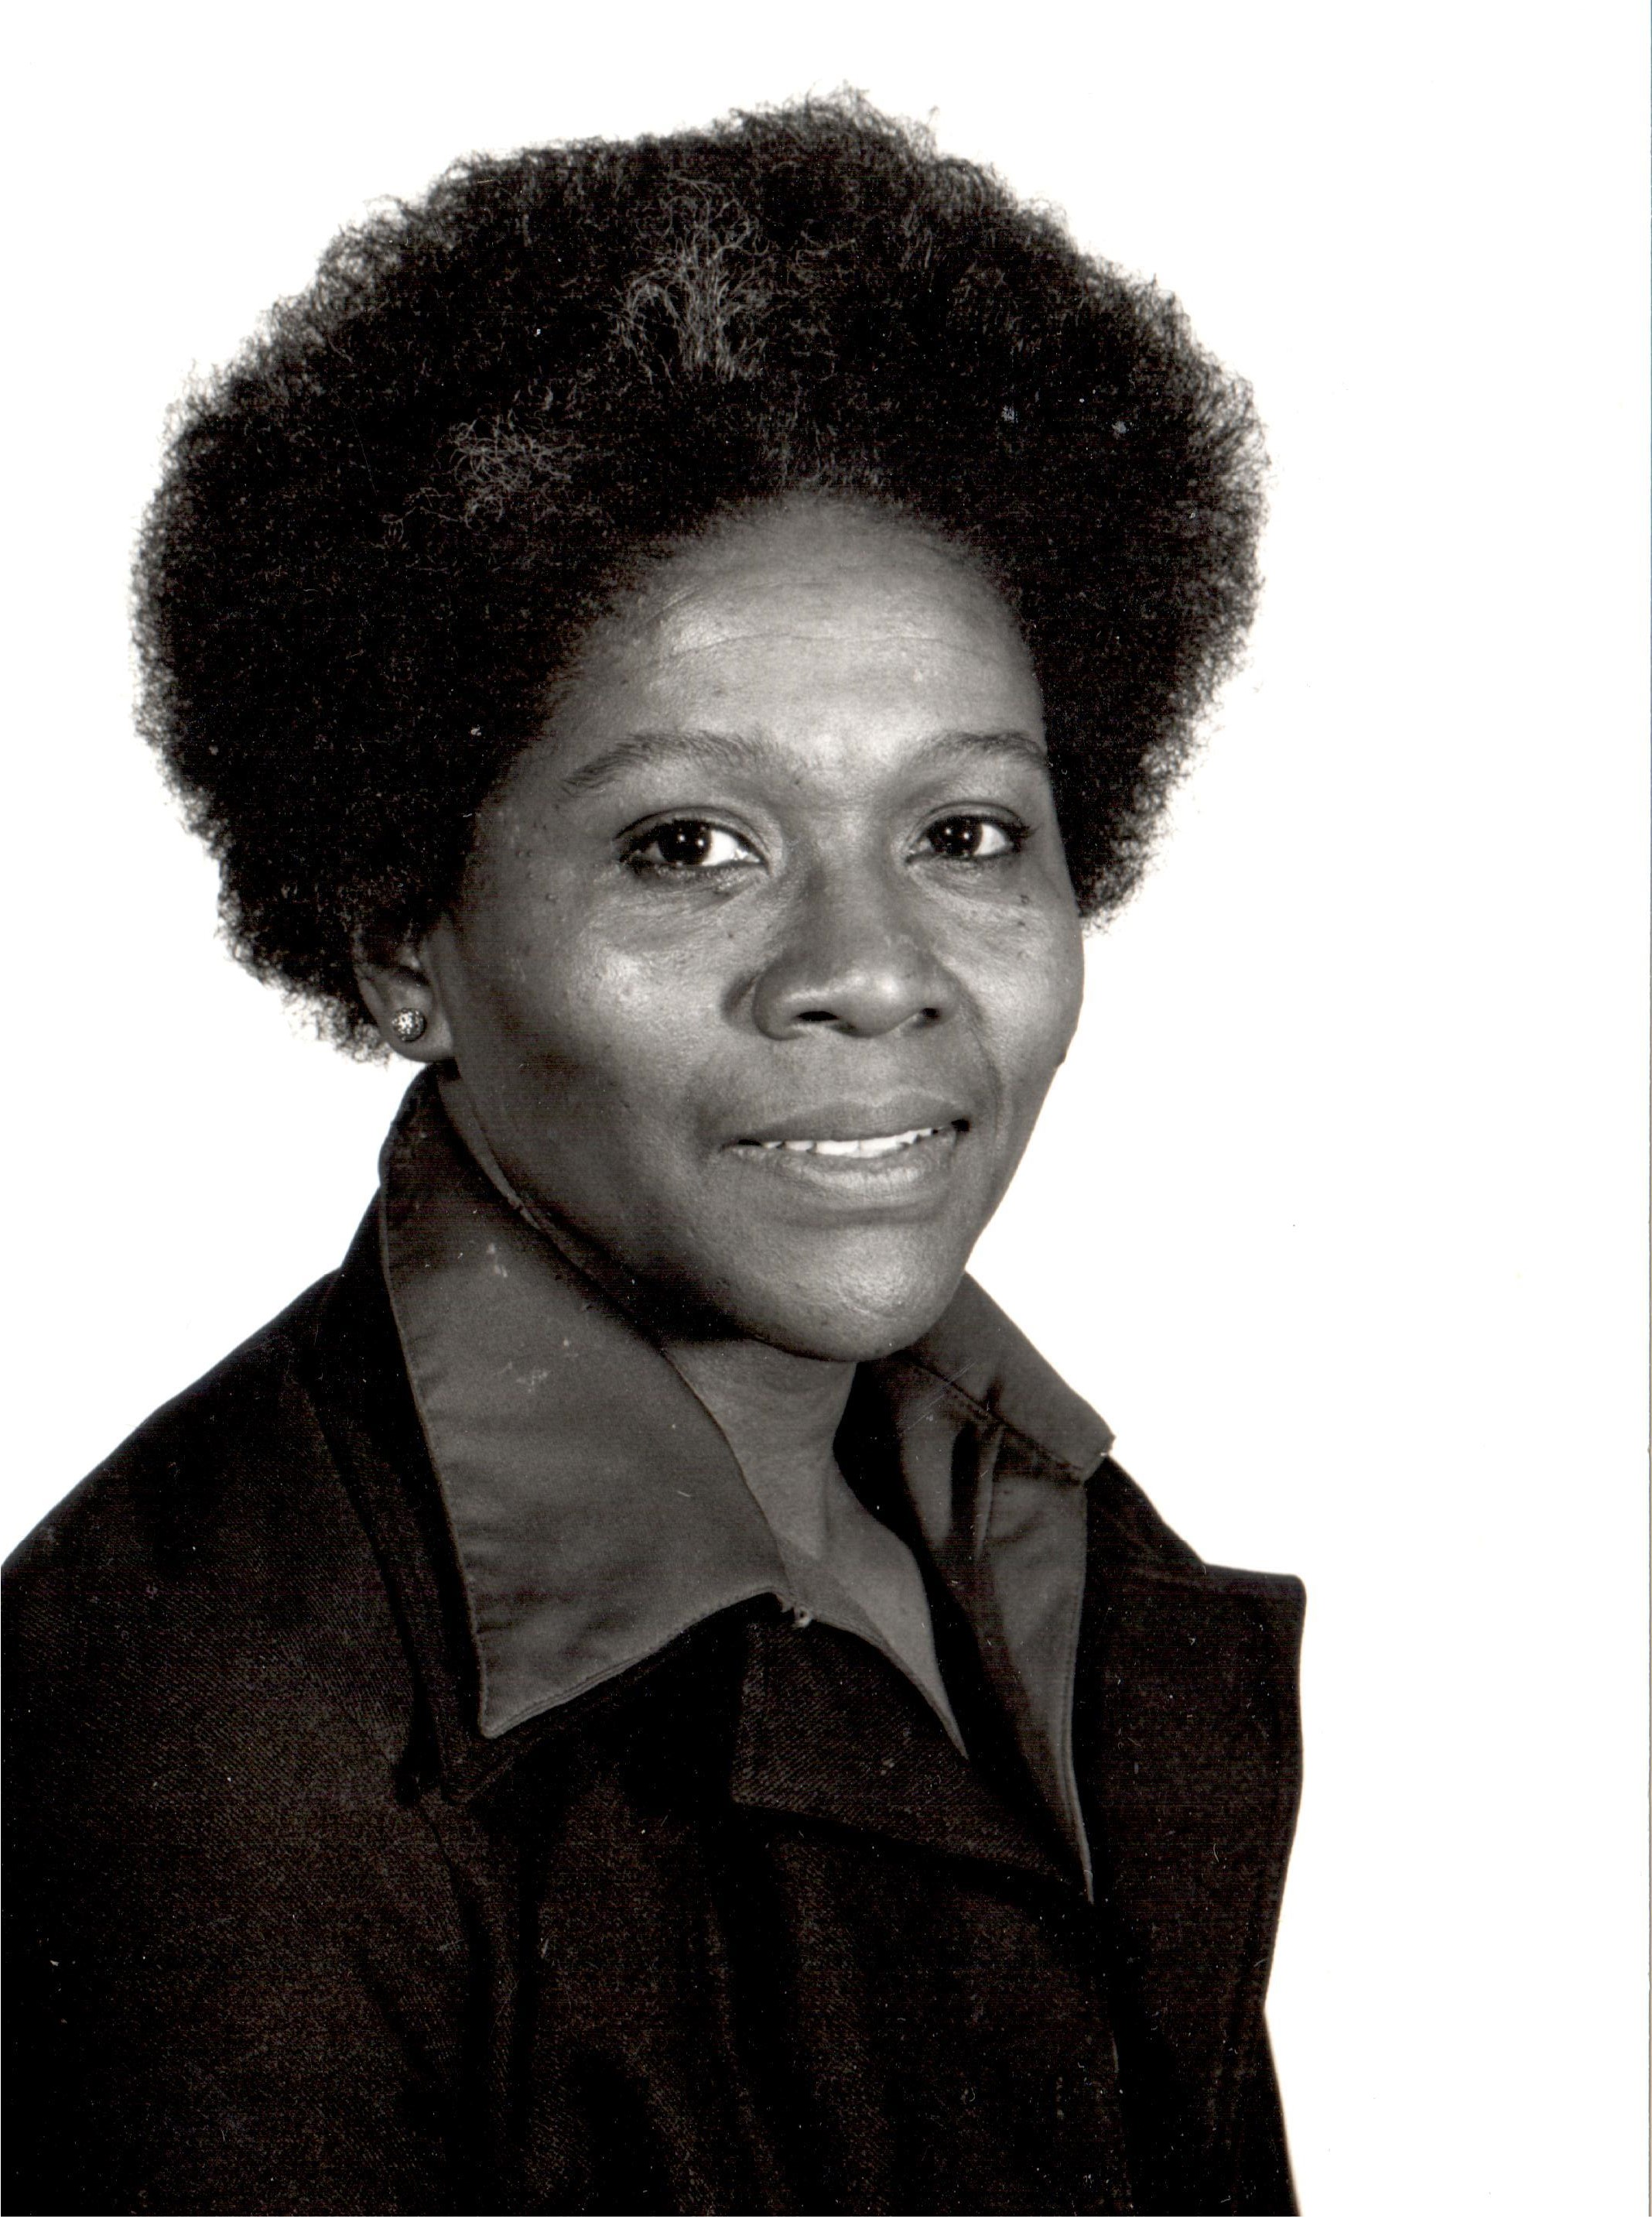 Headshot of Dr. Vernell Lillie circa 1975